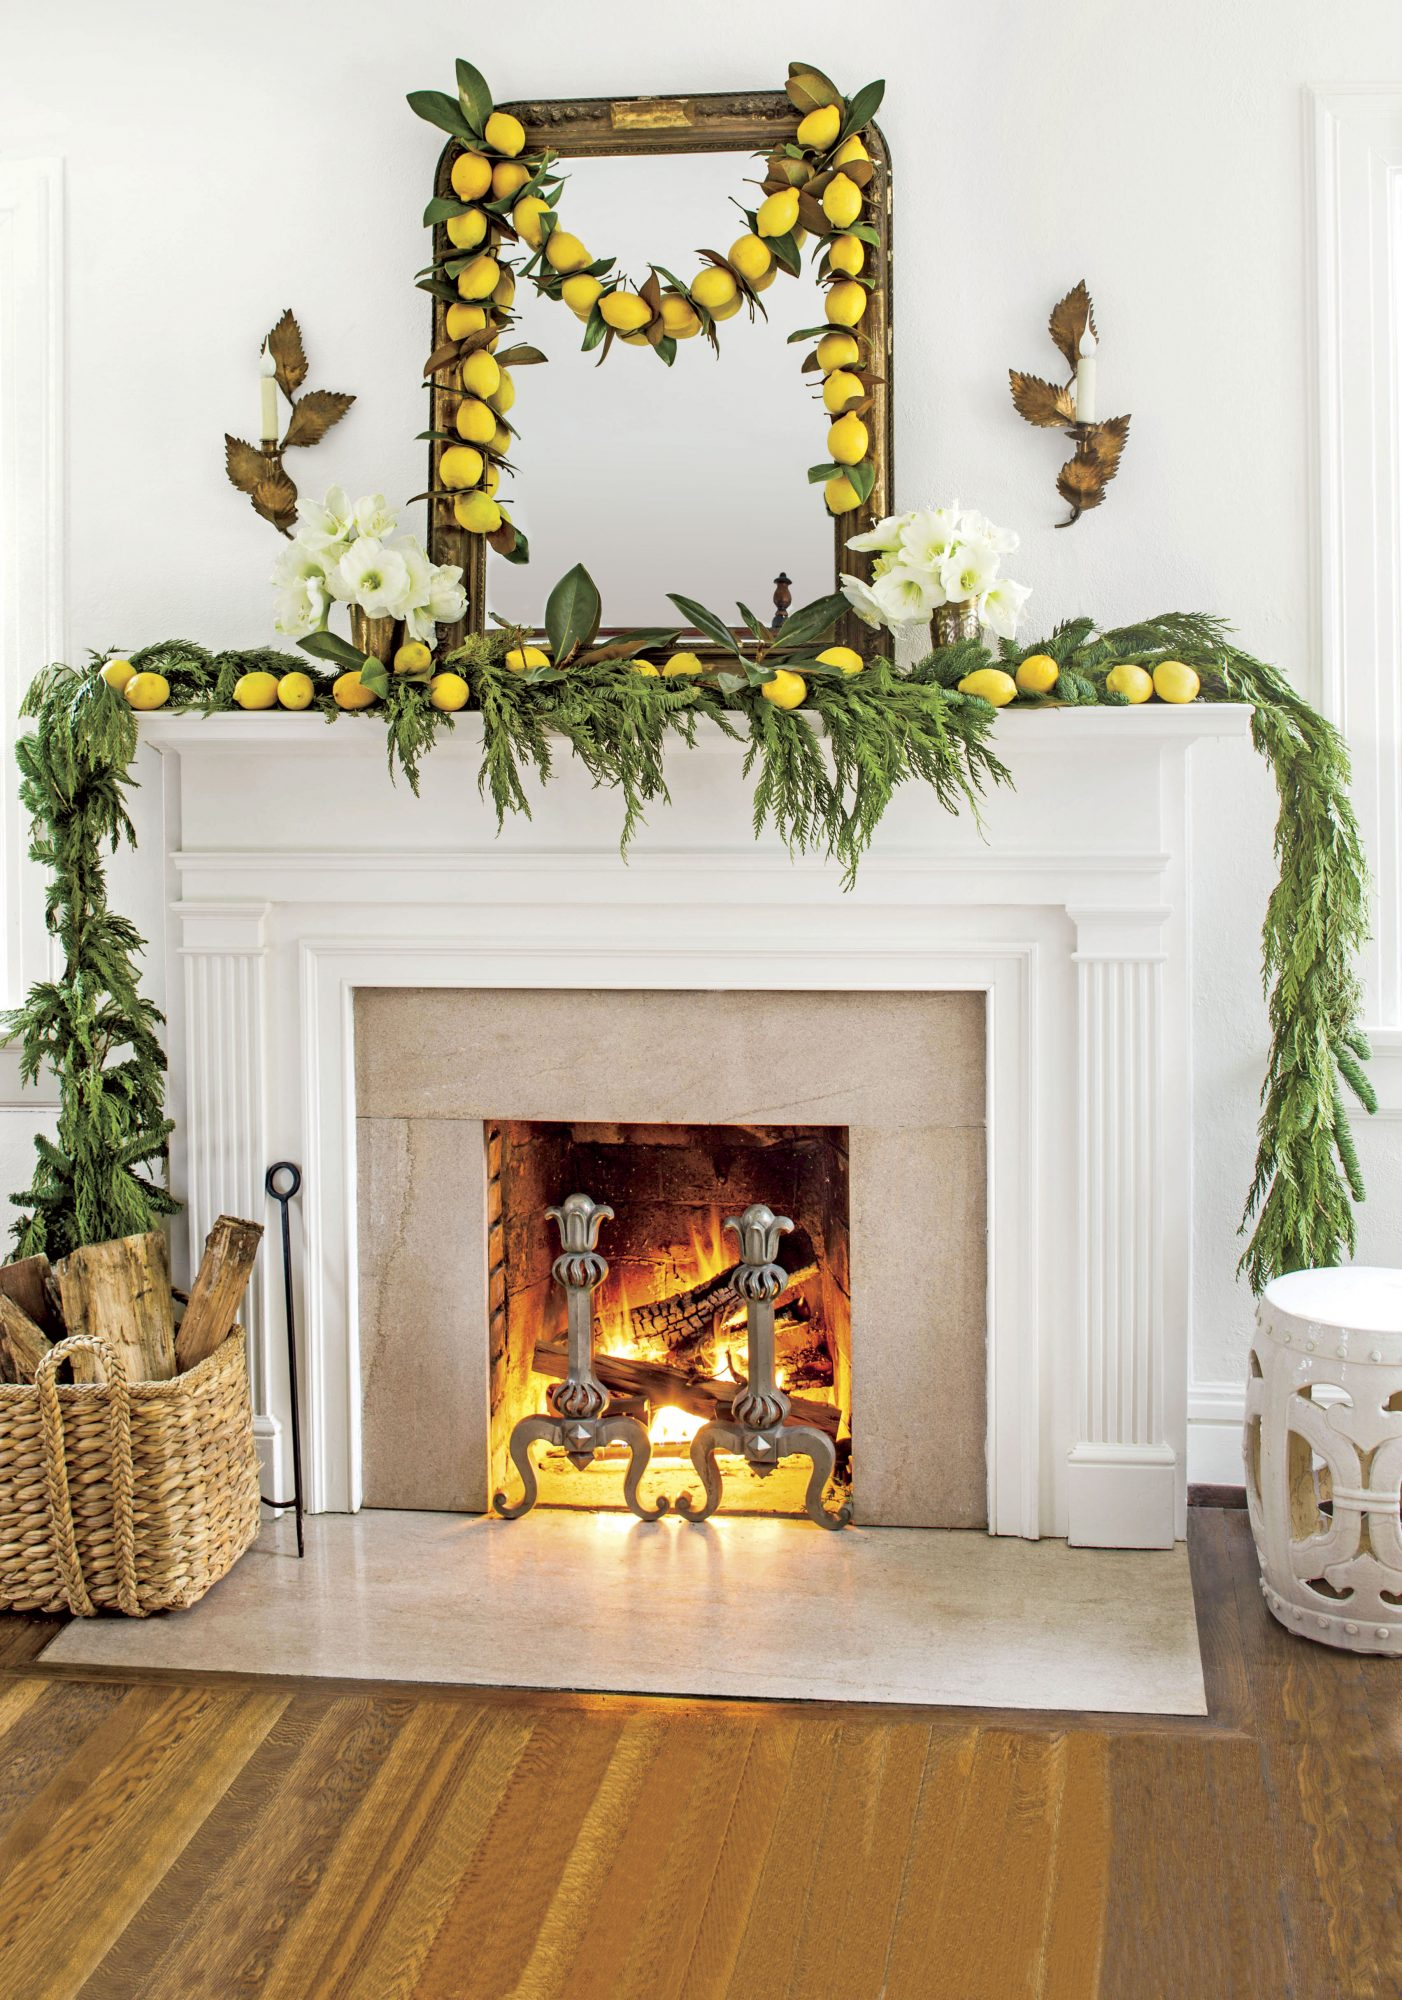 Fresh Lemon Garland Hanging Over Fireplace Mantel